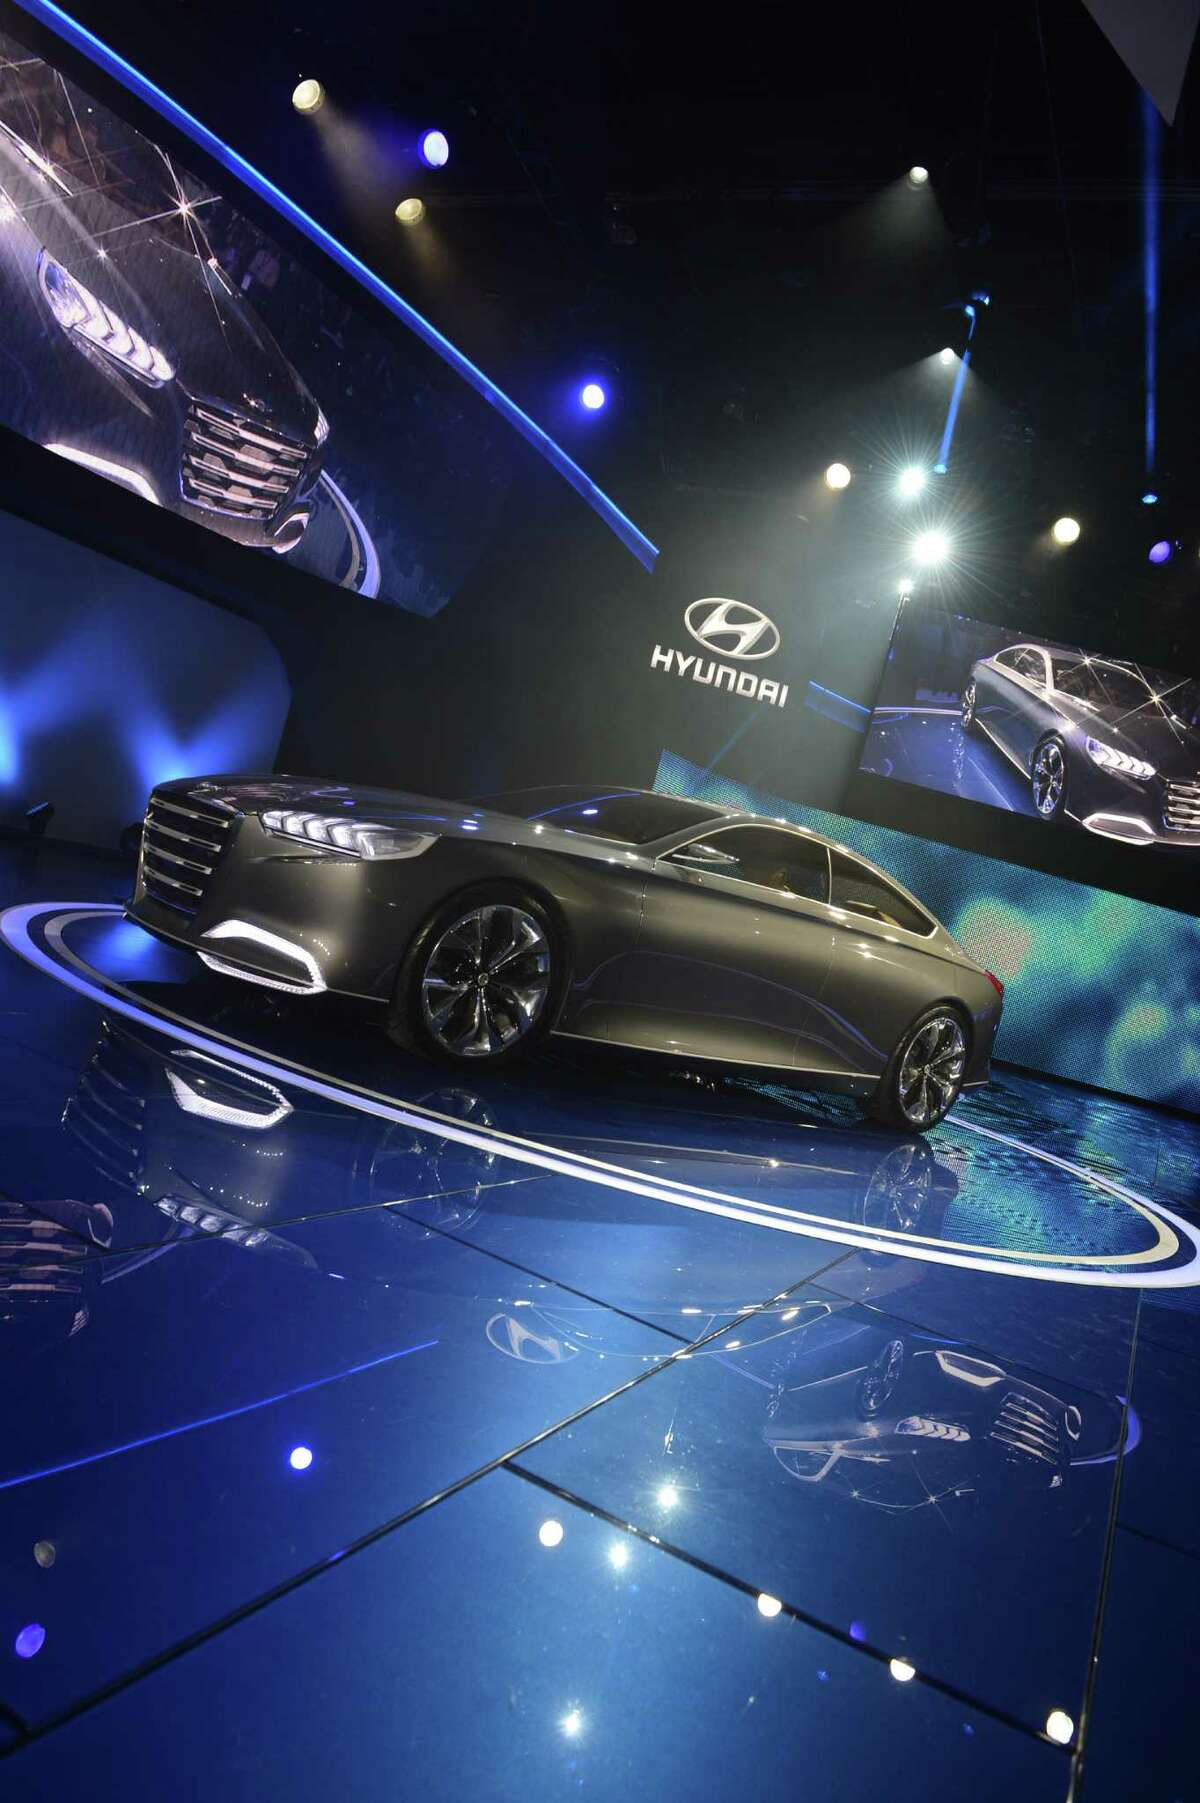 The Hyundai HCD-14 concept car is introduced at the 2013 North American International Auto Show in Detroit, Michigan, on January 14, 2013. AFP PHOTO/Stan HONDA